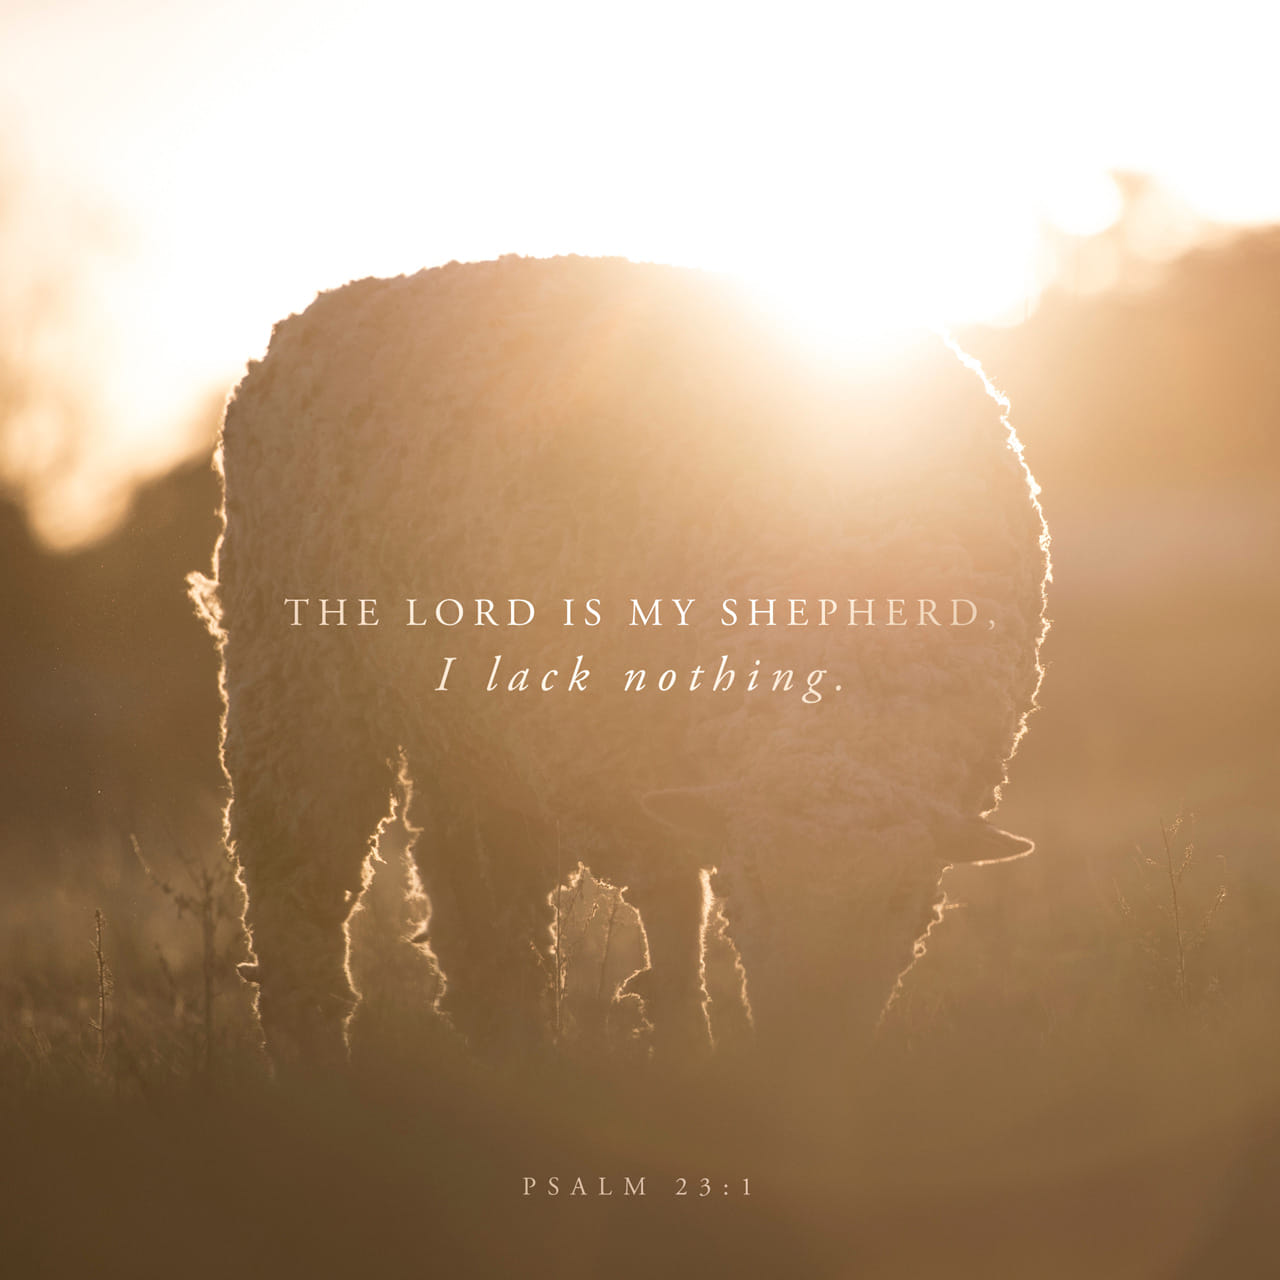 Psalm 23:1-6 The LORD is my shepherd, I lack nothing. He makes me lie down in green pastures, he leads me beside quiet waters, he refreshes my soul. He guides me along the right paths for his name's sake. Even tho | New International Version (NIV)